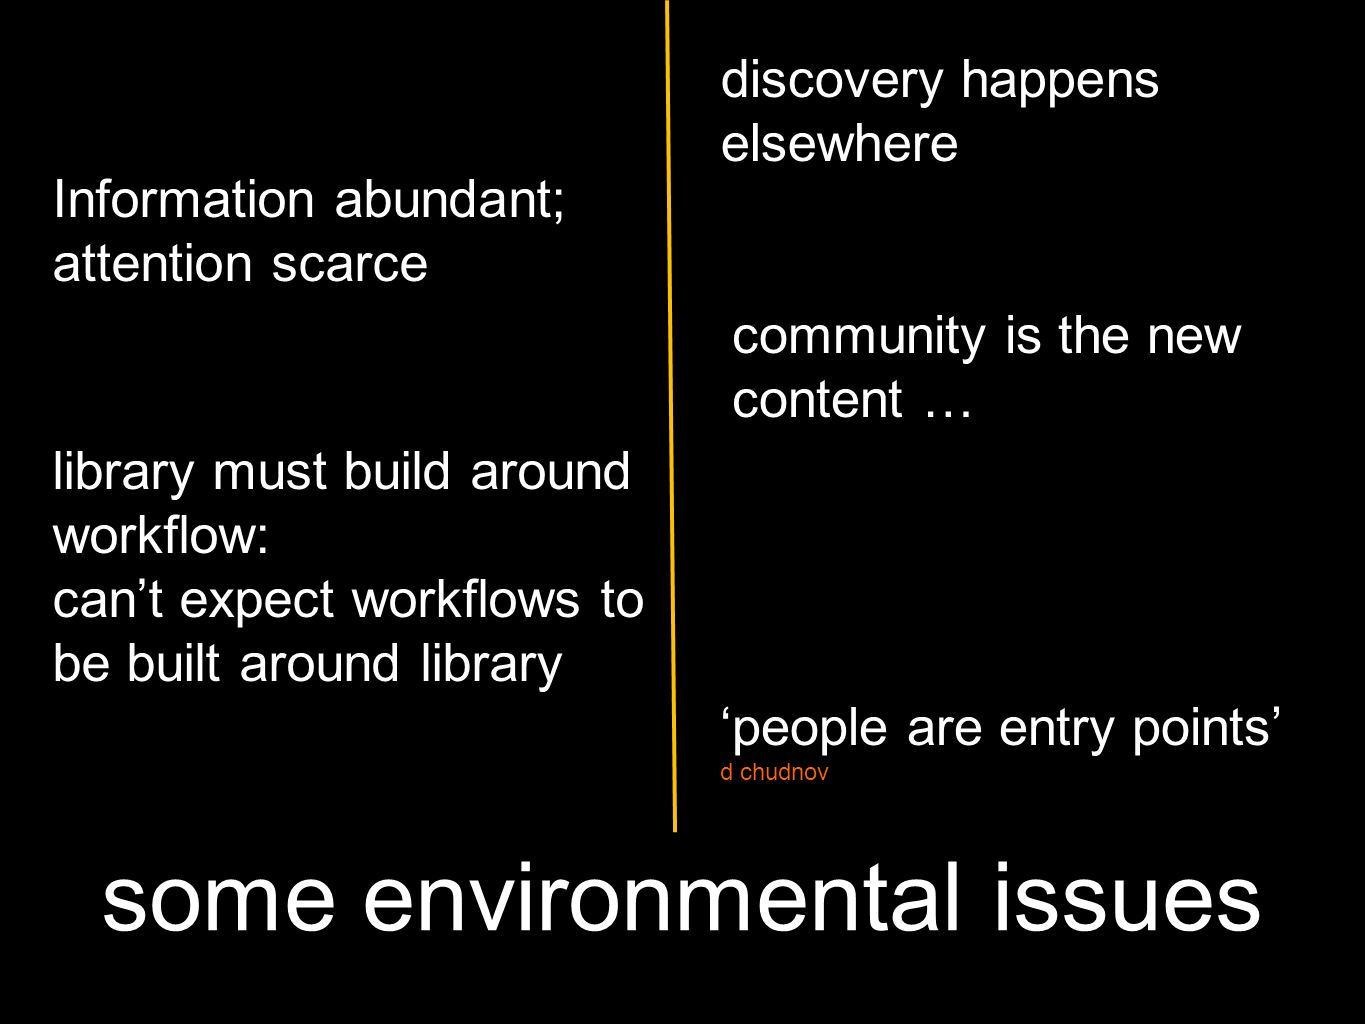 some environmental issues discovery happens elsewhere community is the new content … library must build around workflow: cant expect workflows to be built around library Information abundant; attention scarce people are entry points d chudnov